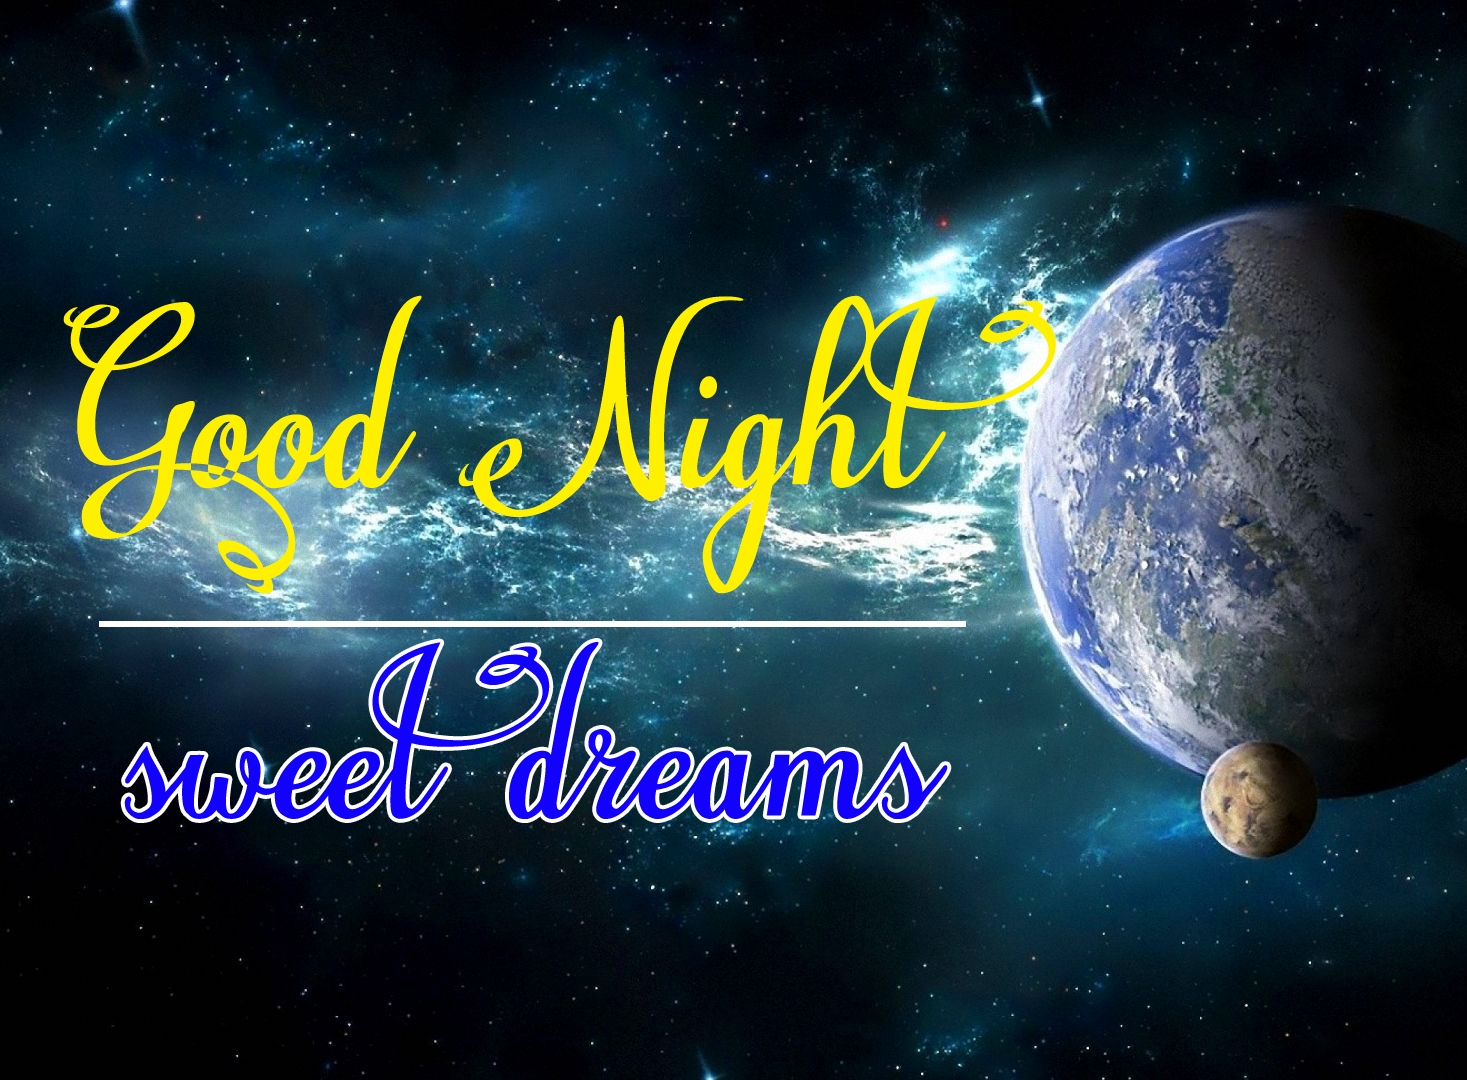 Good night wallpaper hd 40 1